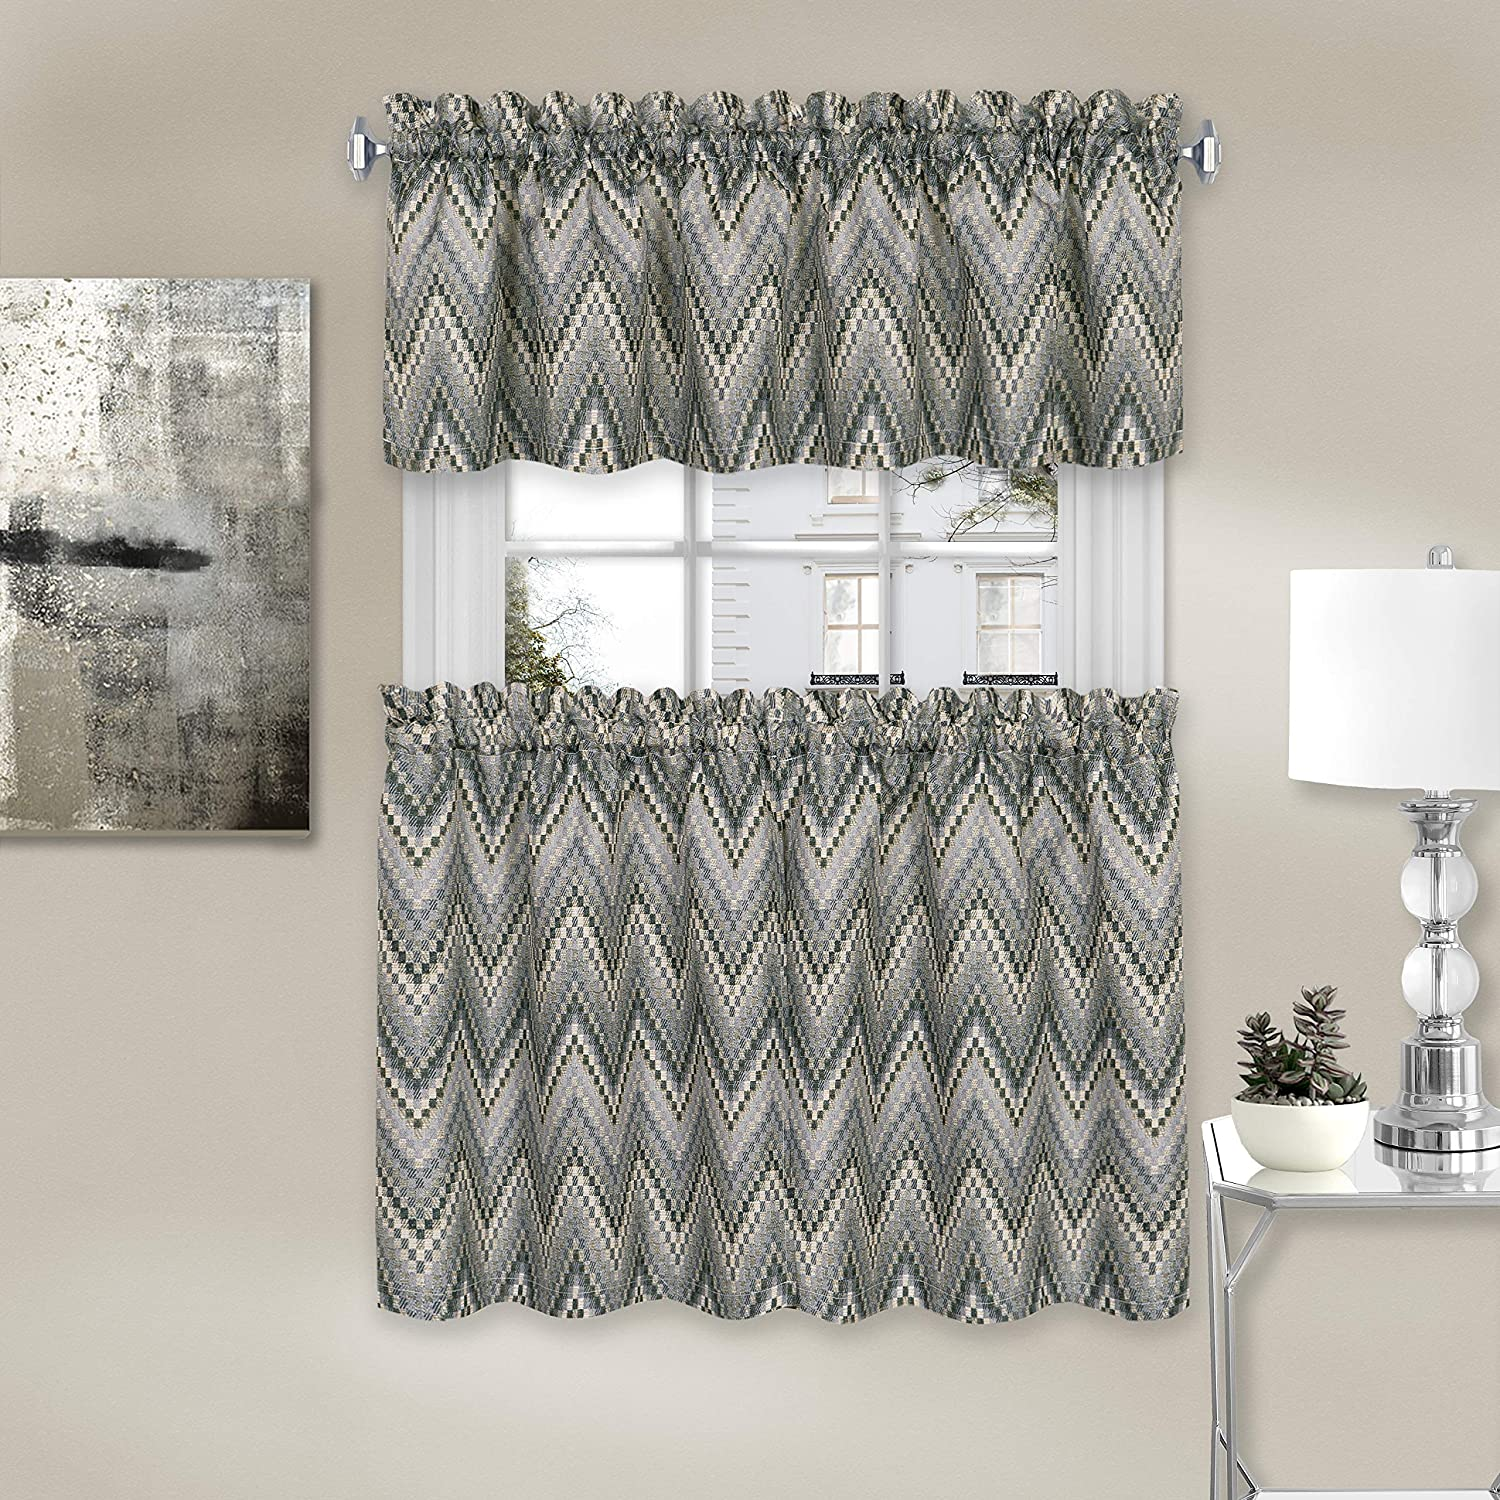 Achim Home Furnishings, Charcoal Avery Window Curtain Tier Pair and Valance Set, 58